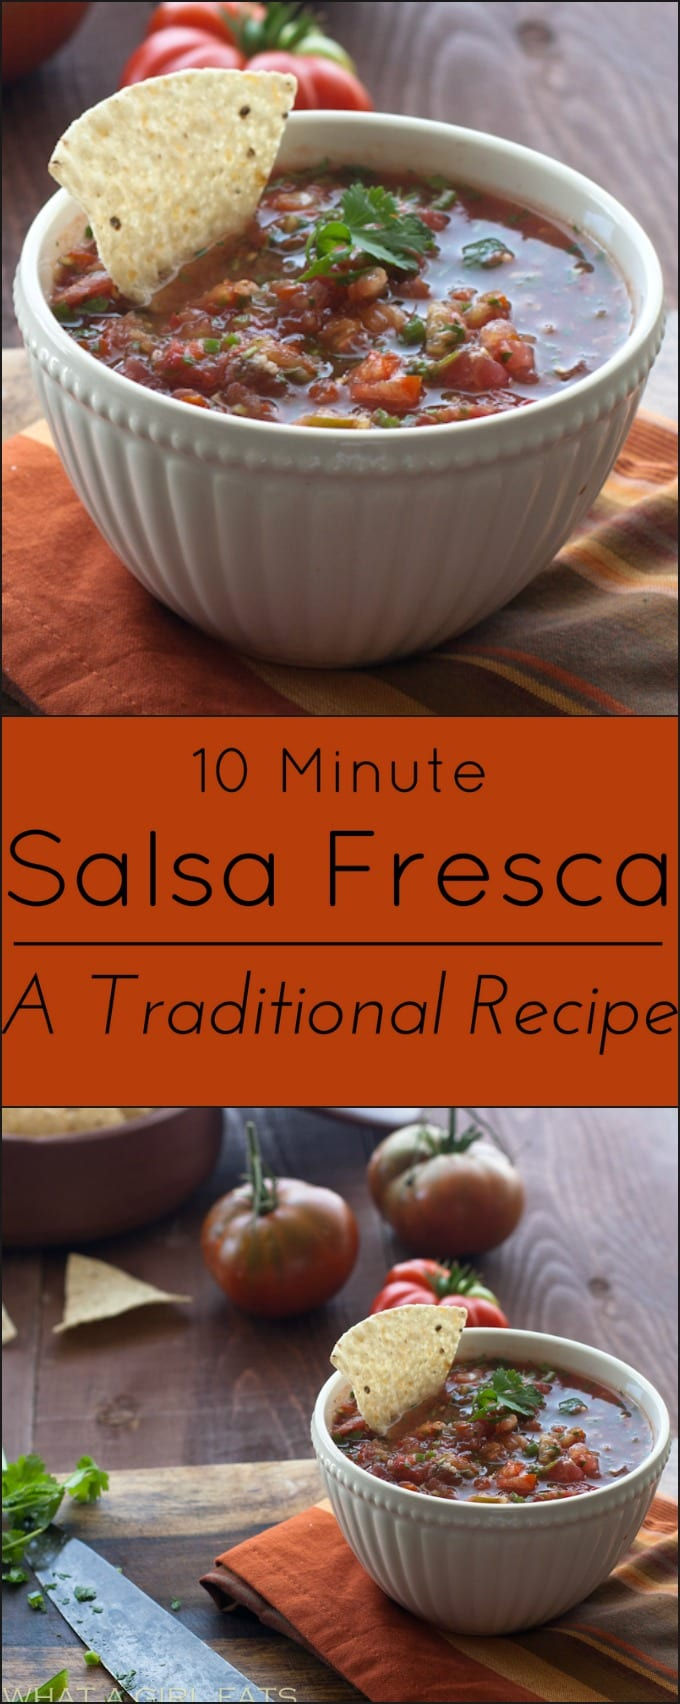 Fresh Salsa from an traditional Mexican recipe. Gluten free.